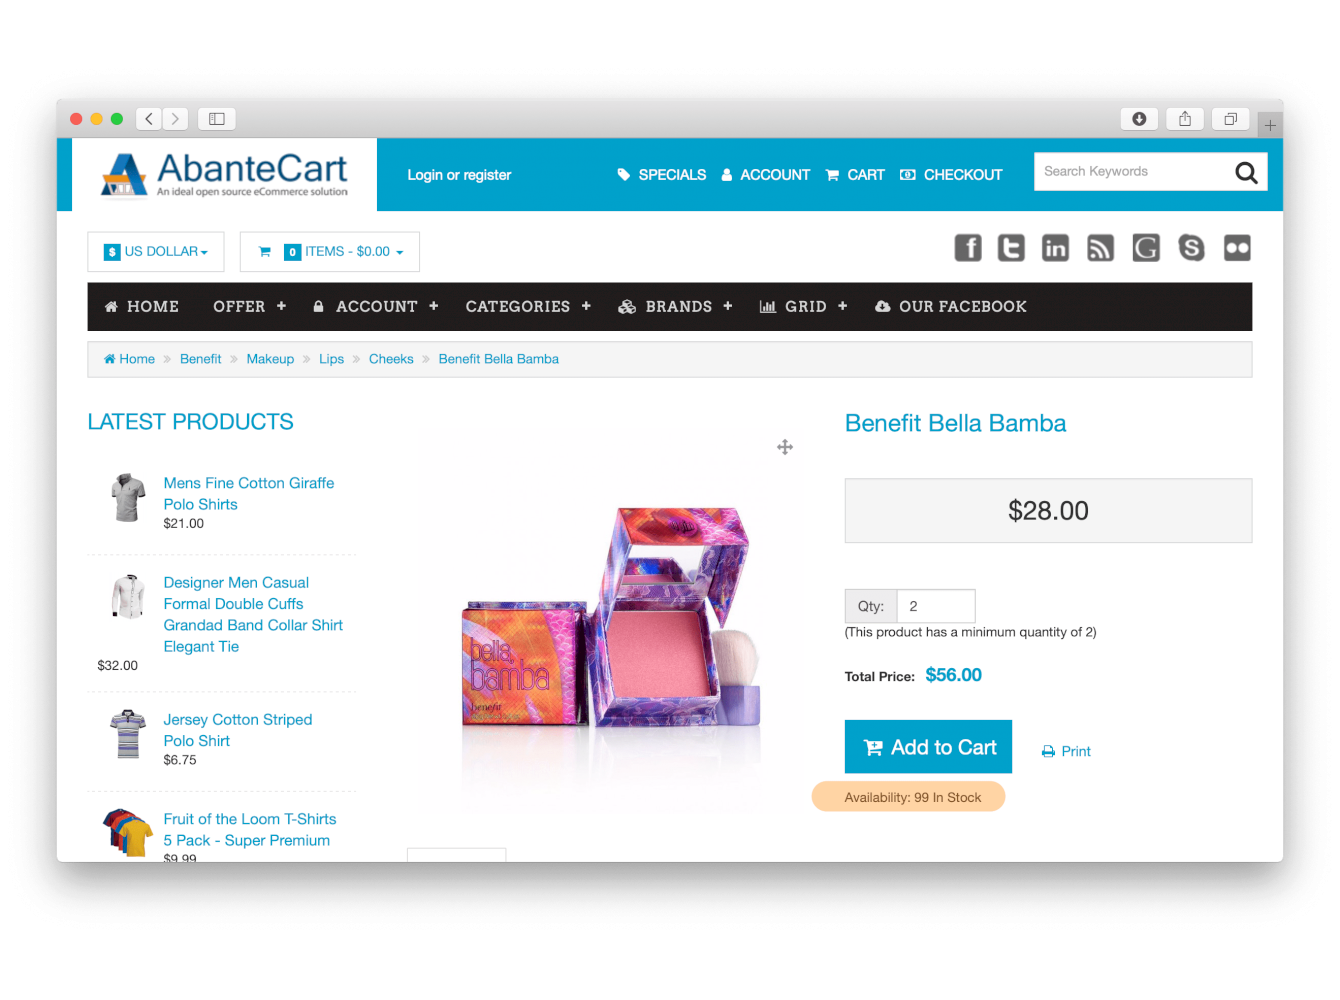 Show Products' Availability Stock on Category Pages